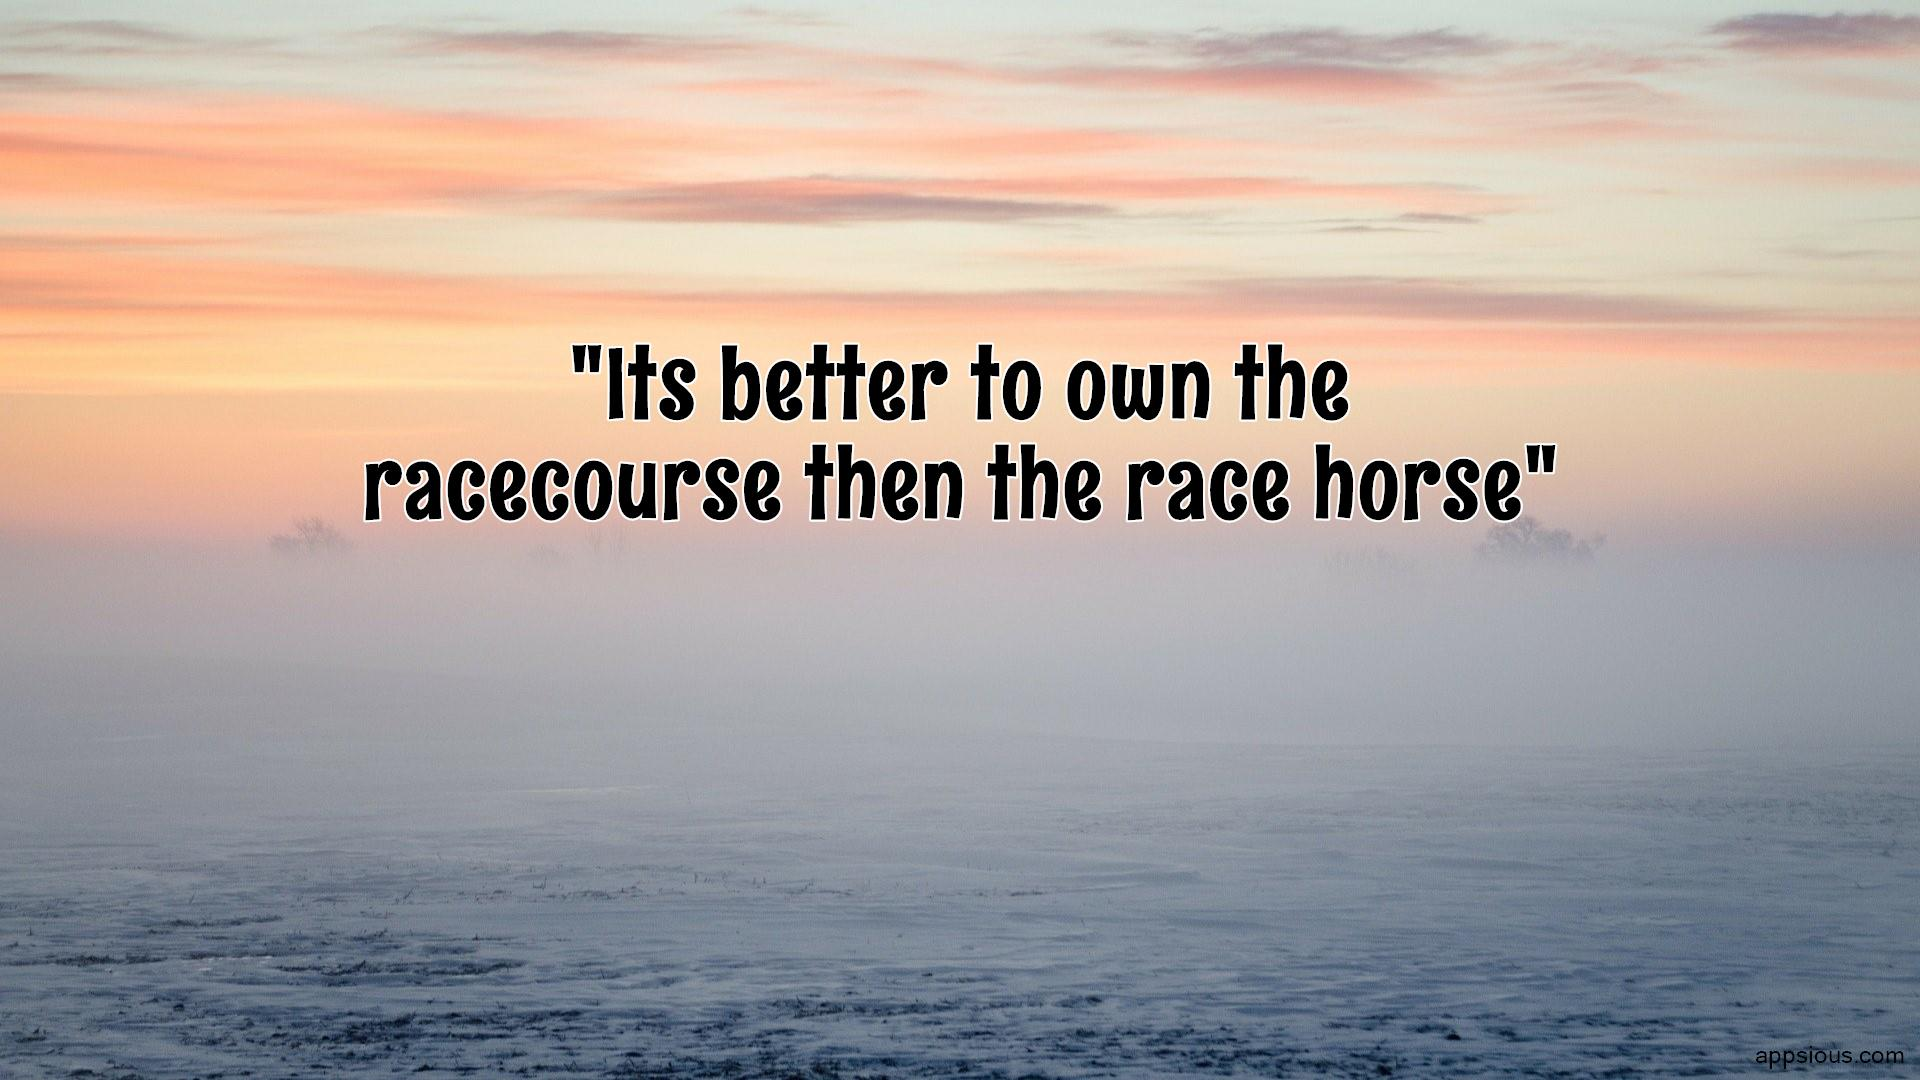 Its better to own the racecourse then the race horse